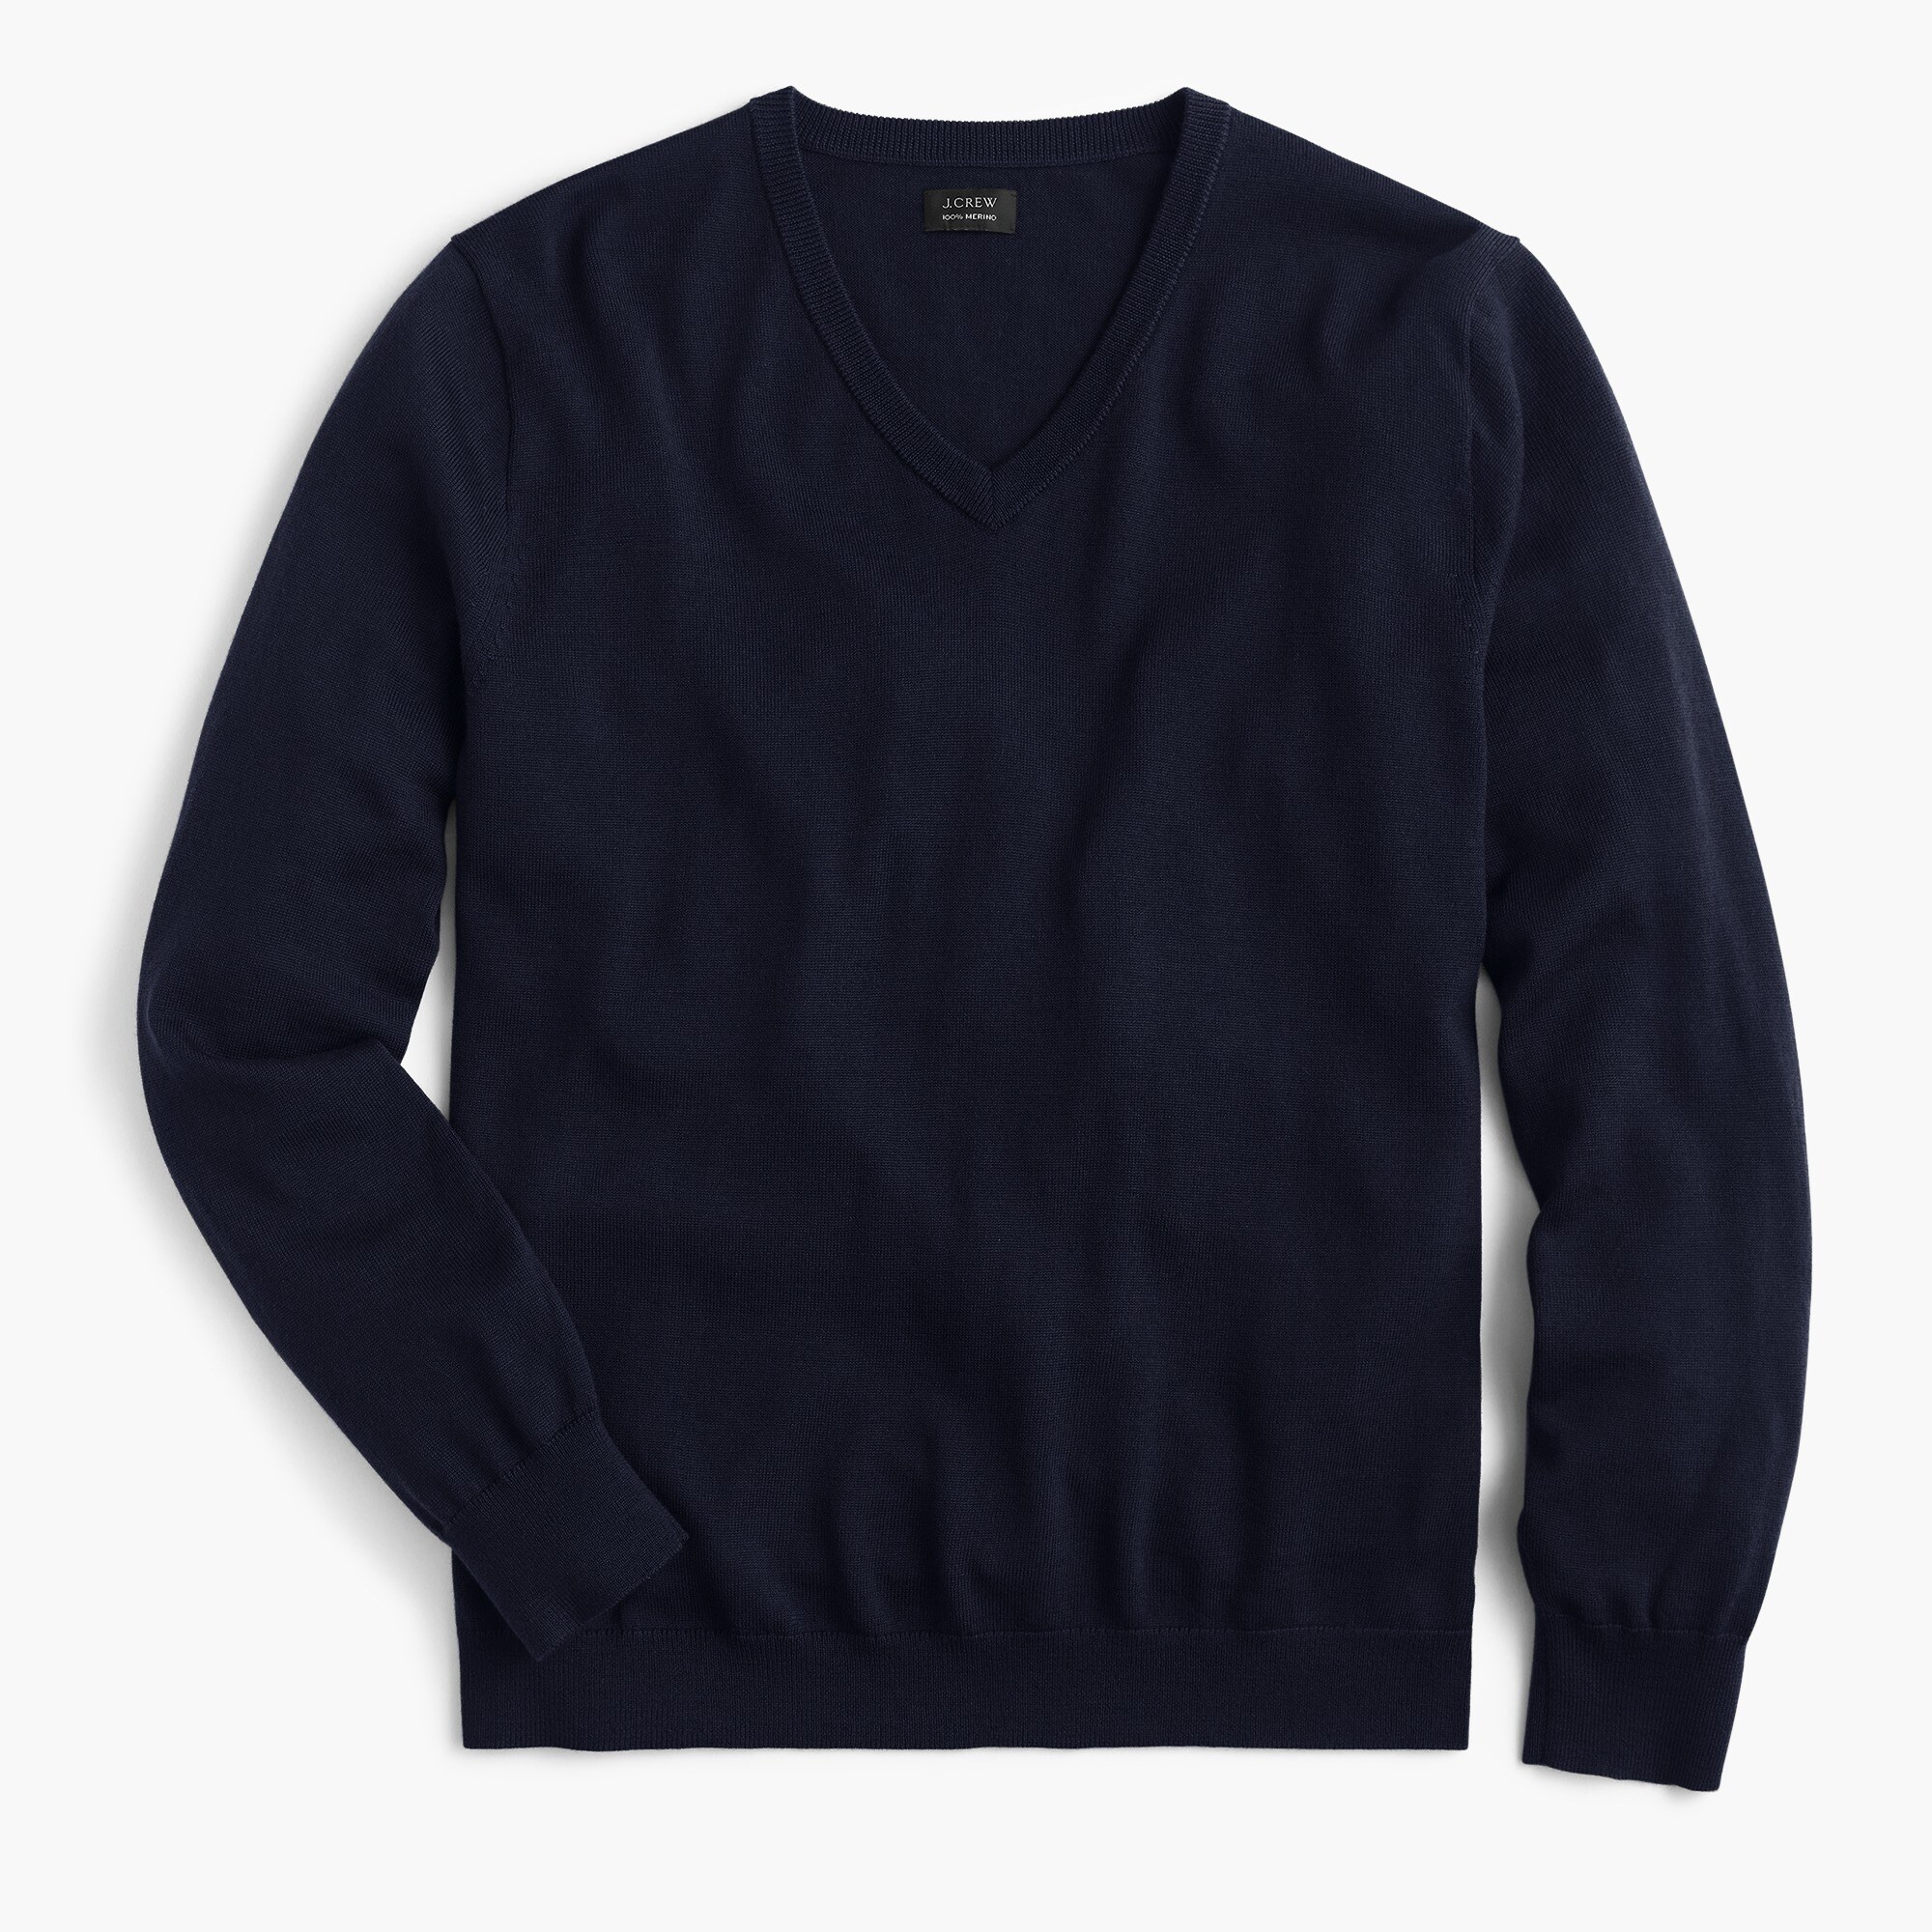 mens Tall merino wool V-neck sweater